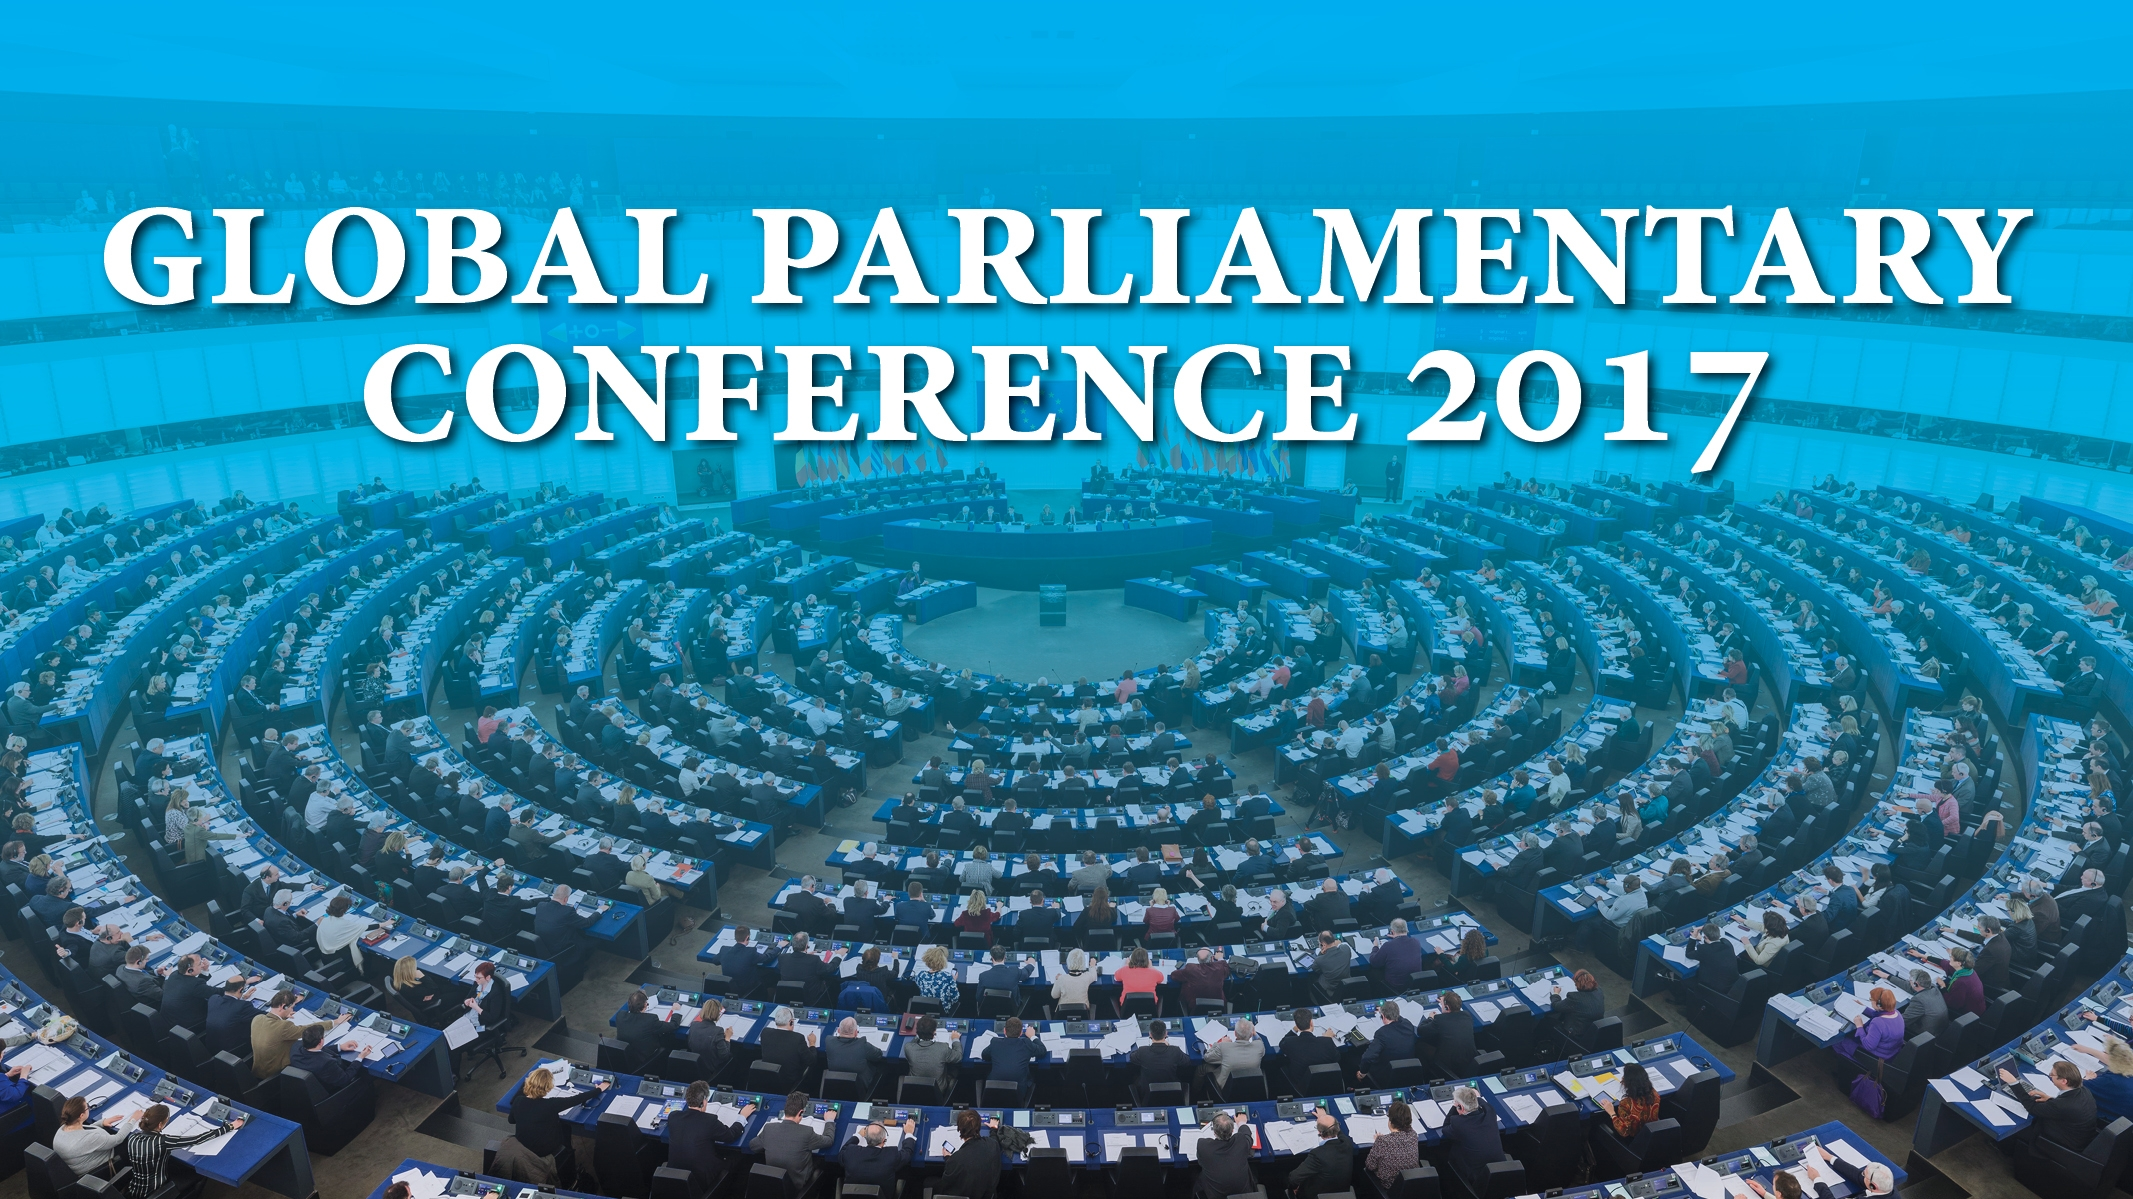 Global Parliamentary Conference 2017